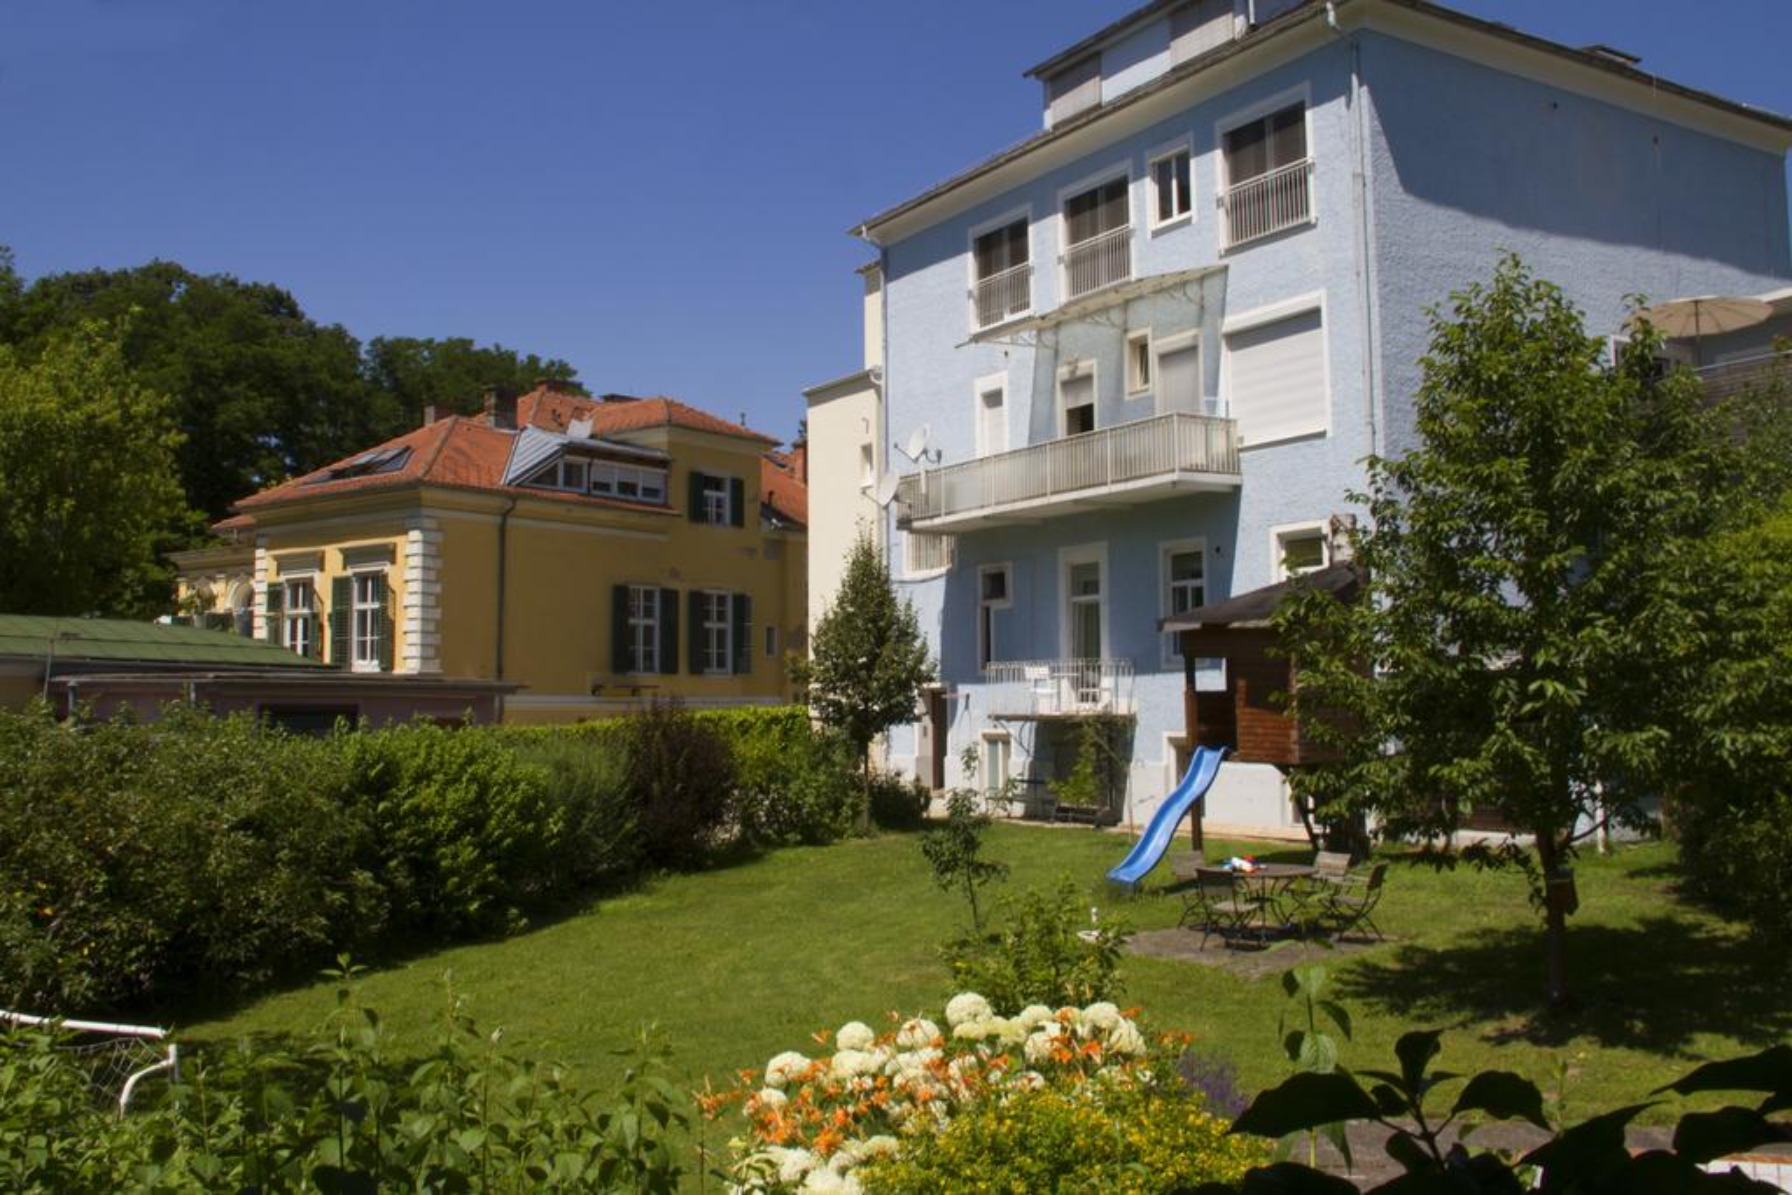 A large lawn in front of a house at Hotel Villa Rückert.